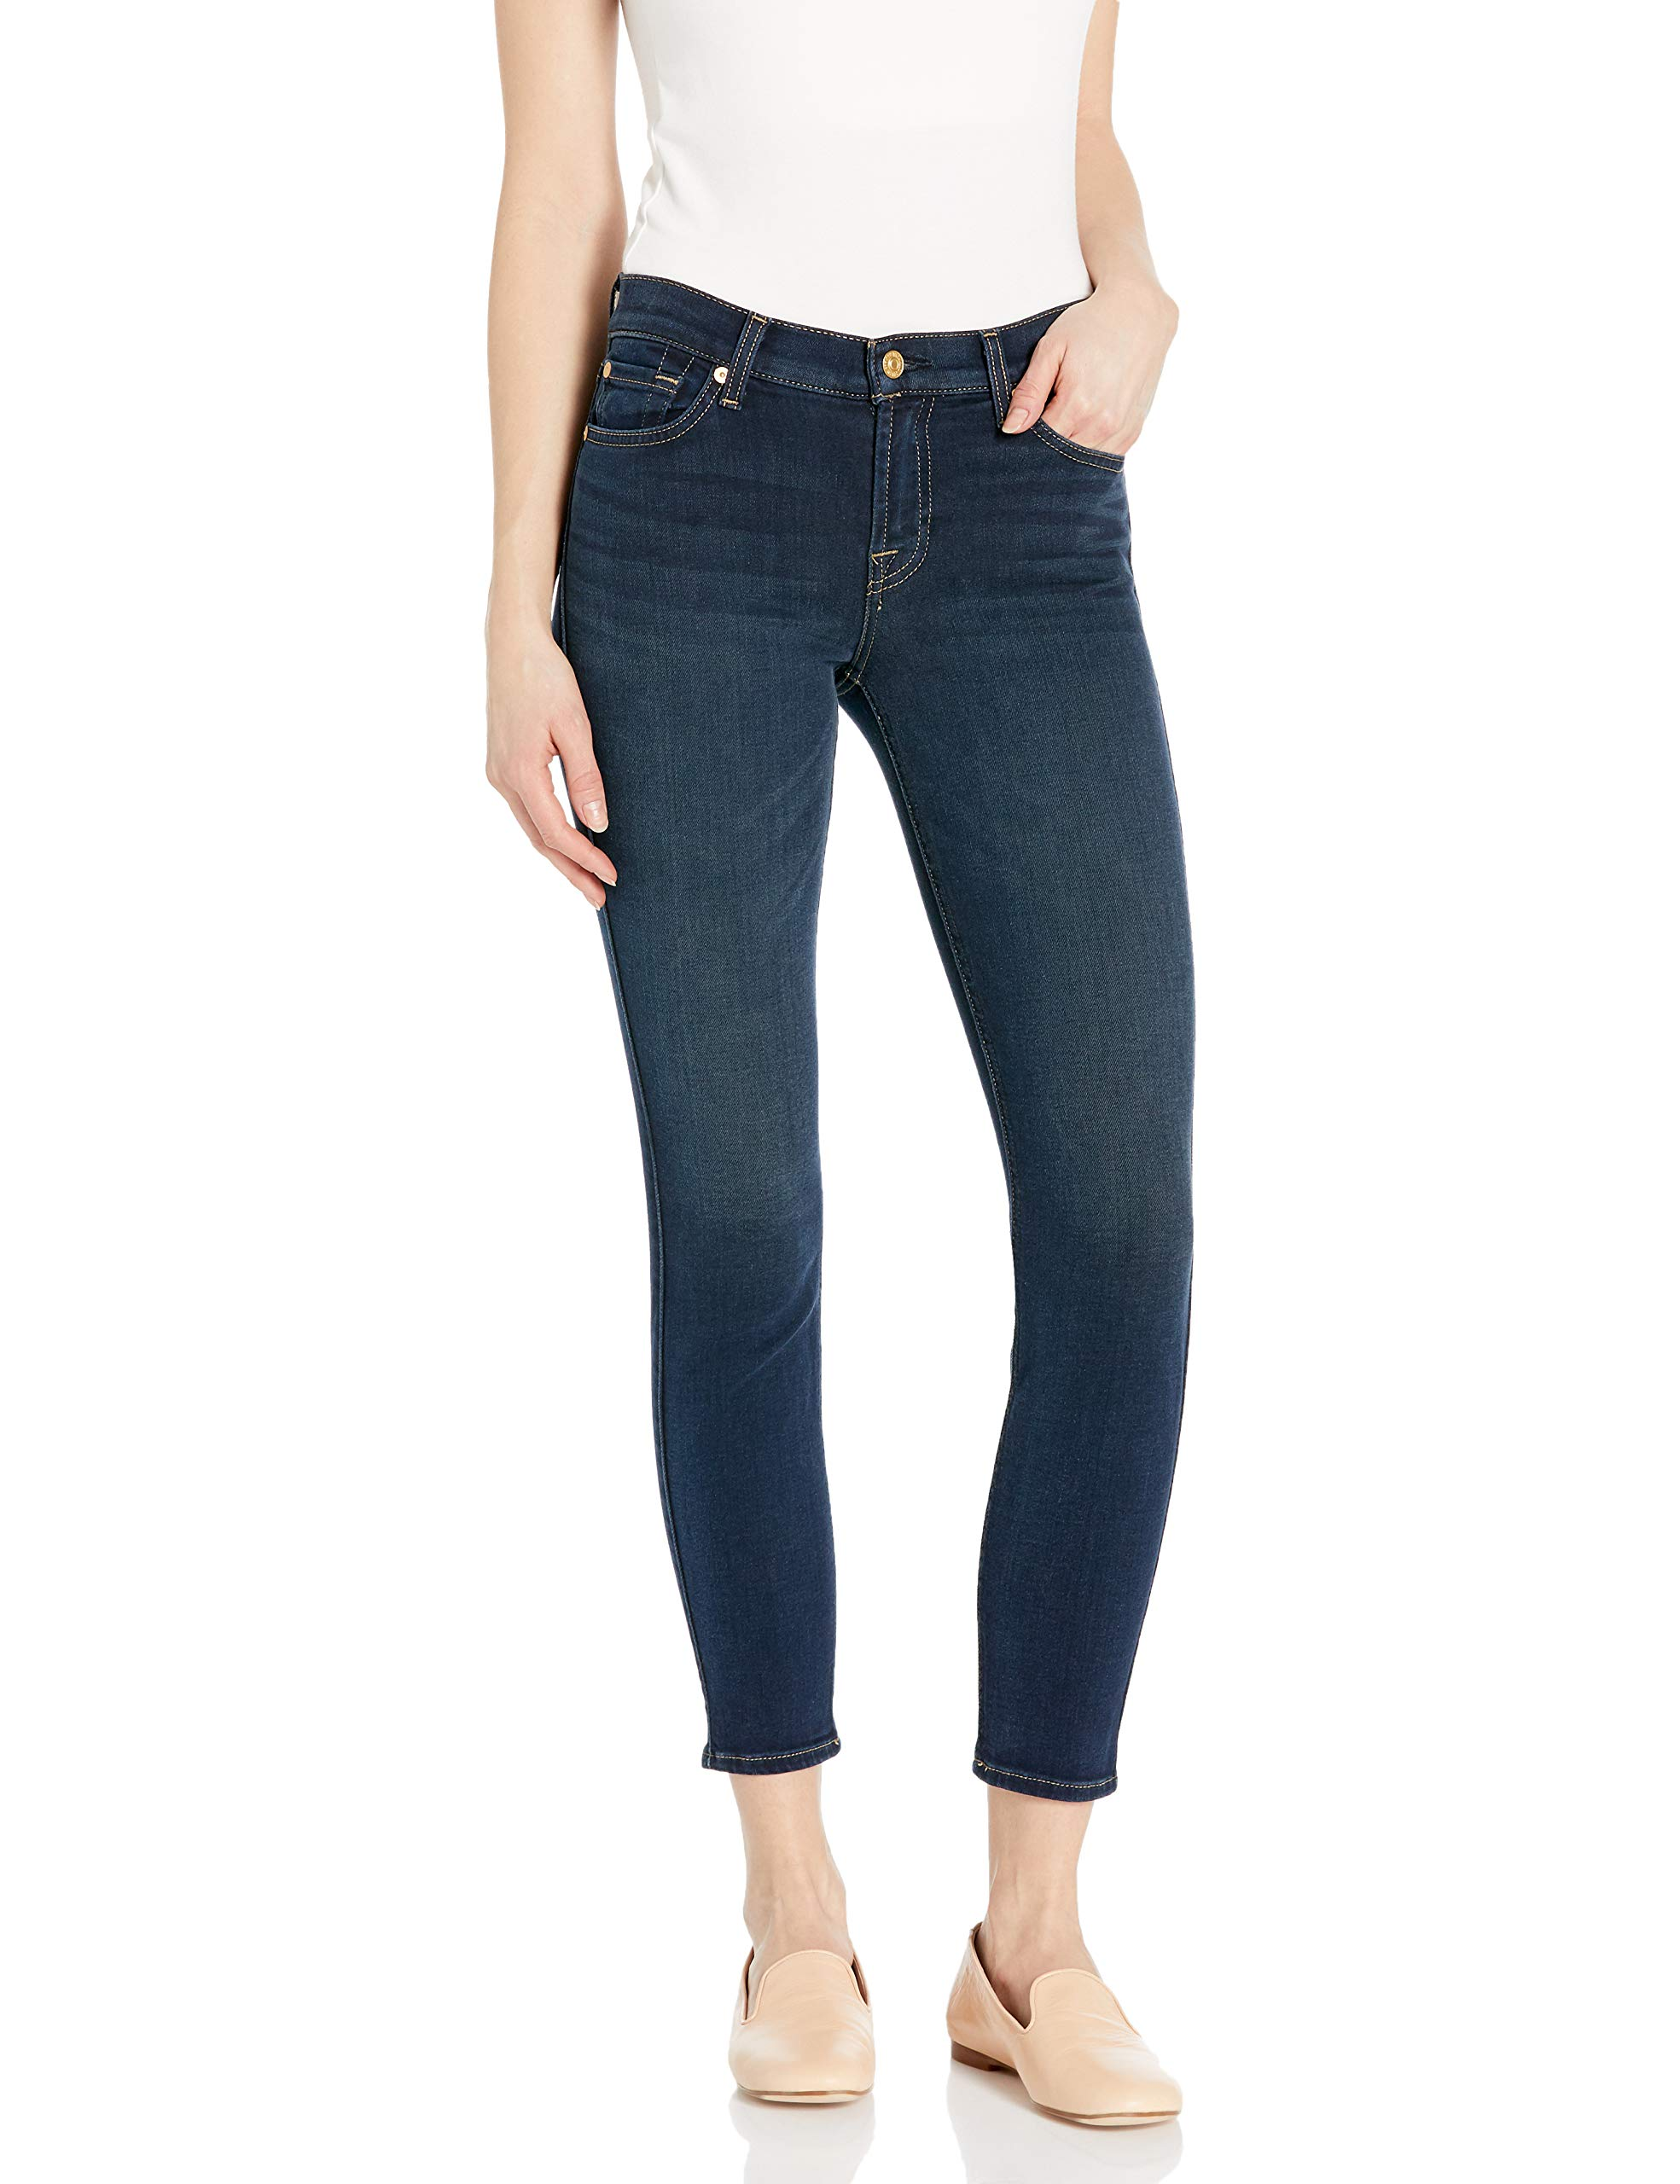 7 For All Mankind Womens Mid Rise Skinny Fit Ankle Jeans